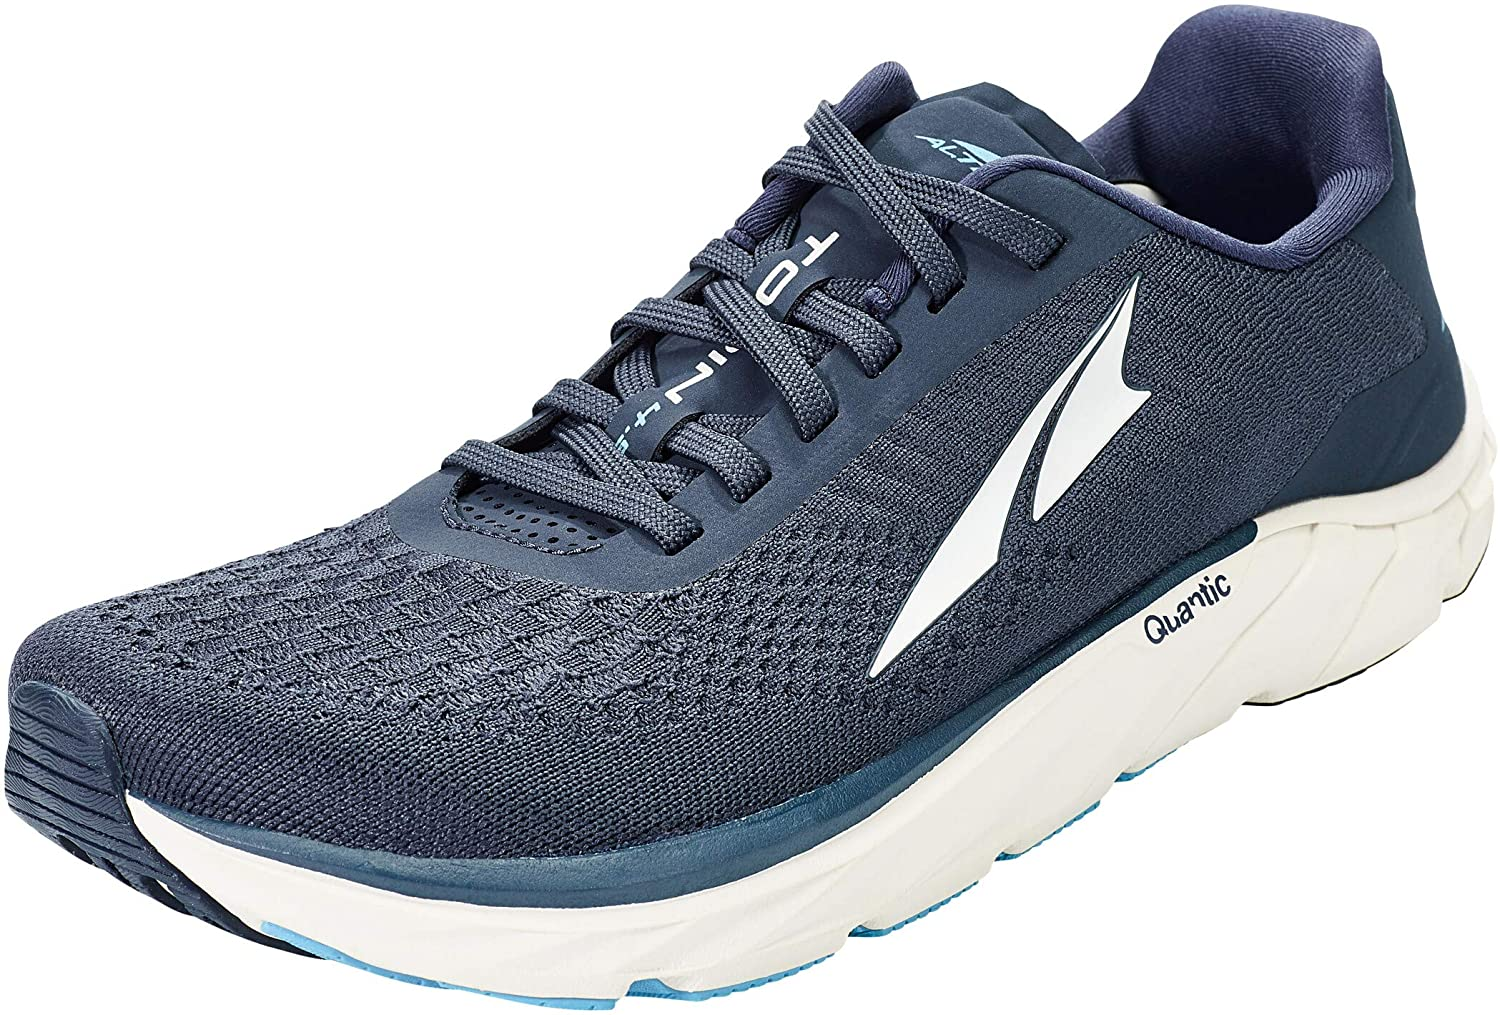 Altra Men's Torin 4.5 Plush Road Running Shoe in Majolica Blue from the side